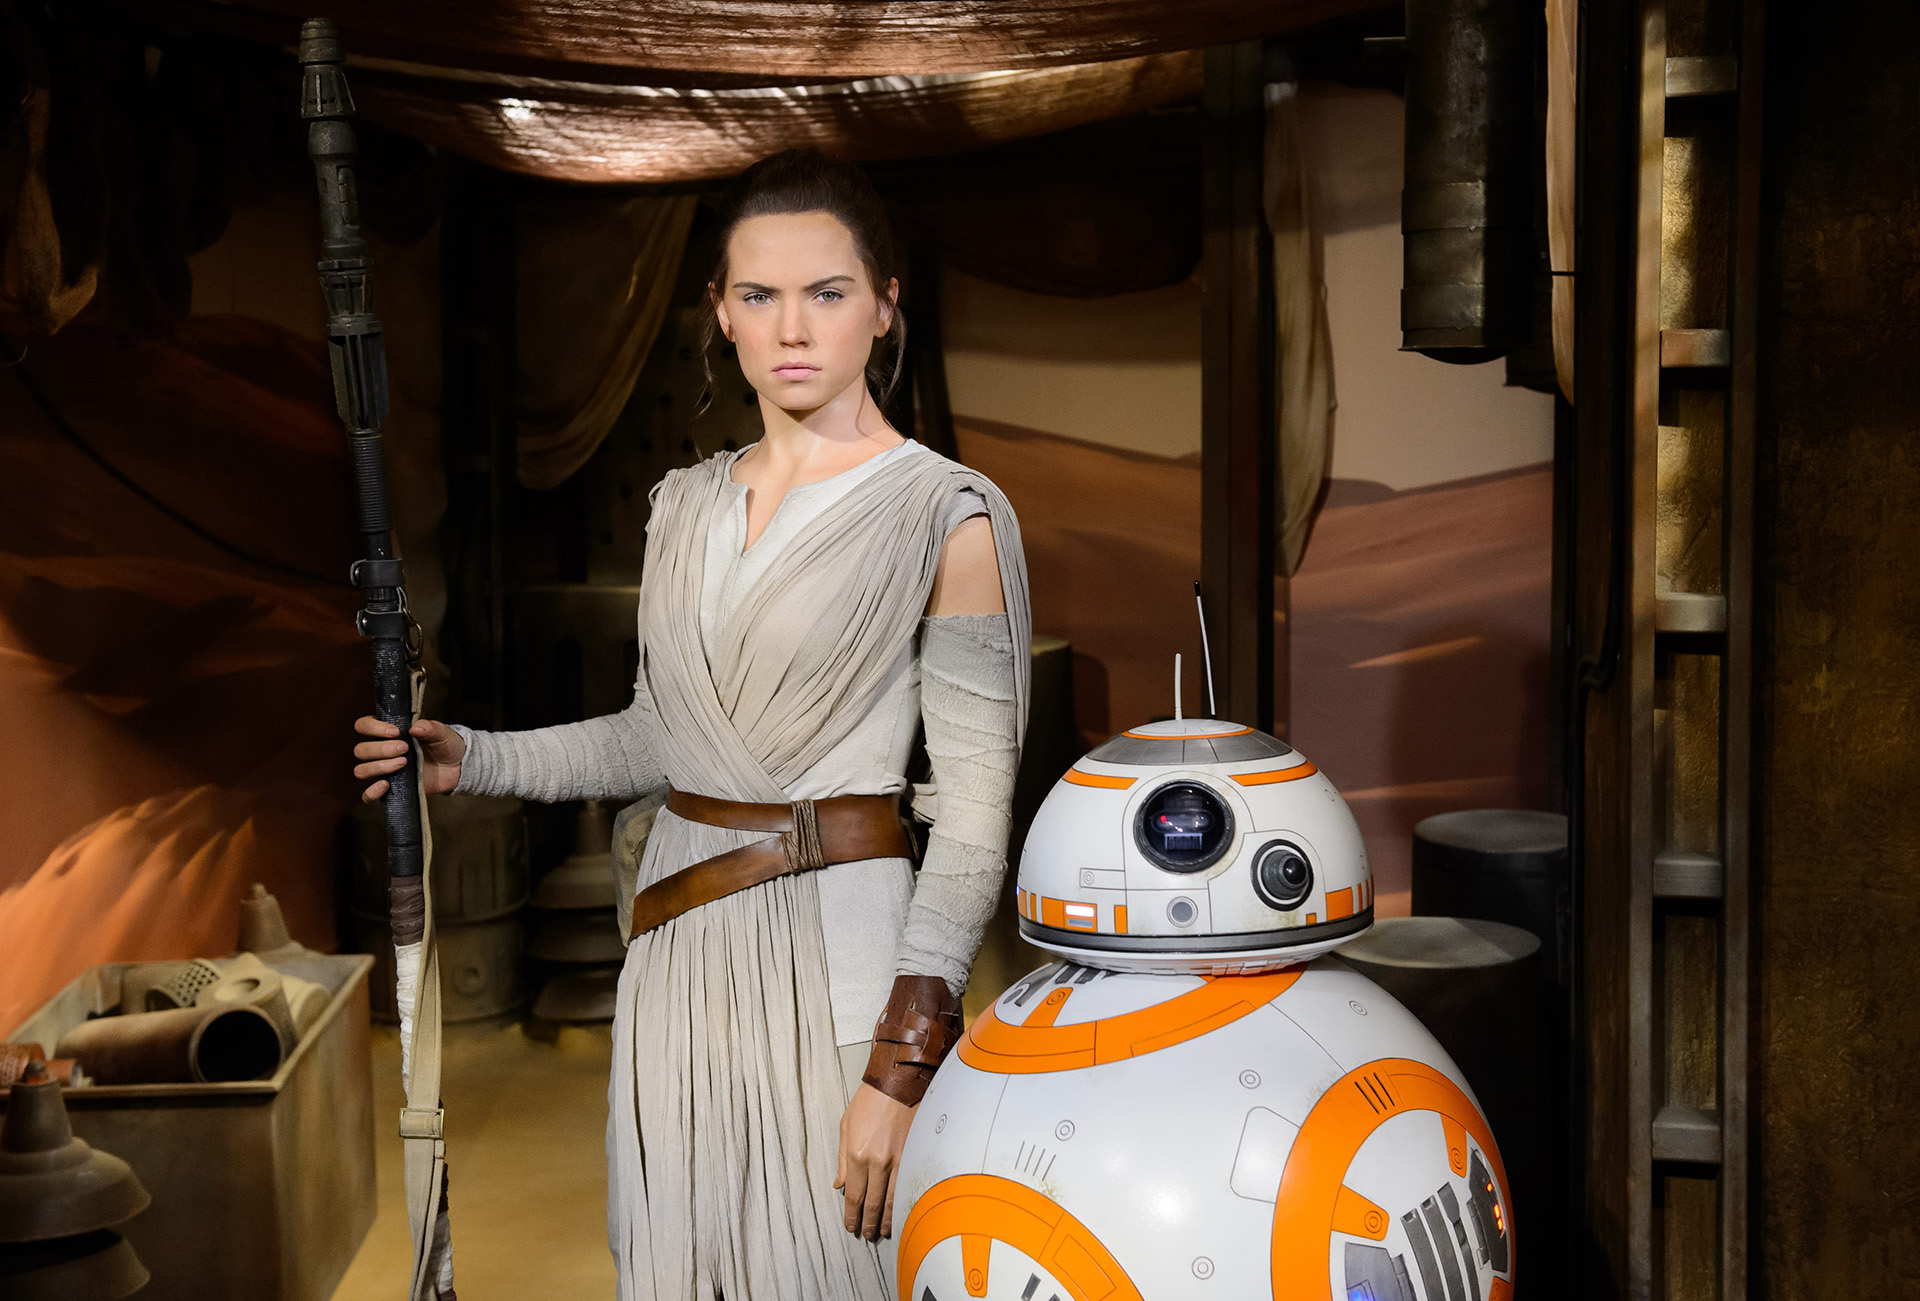 Jakku figure at Madame Tussauds London